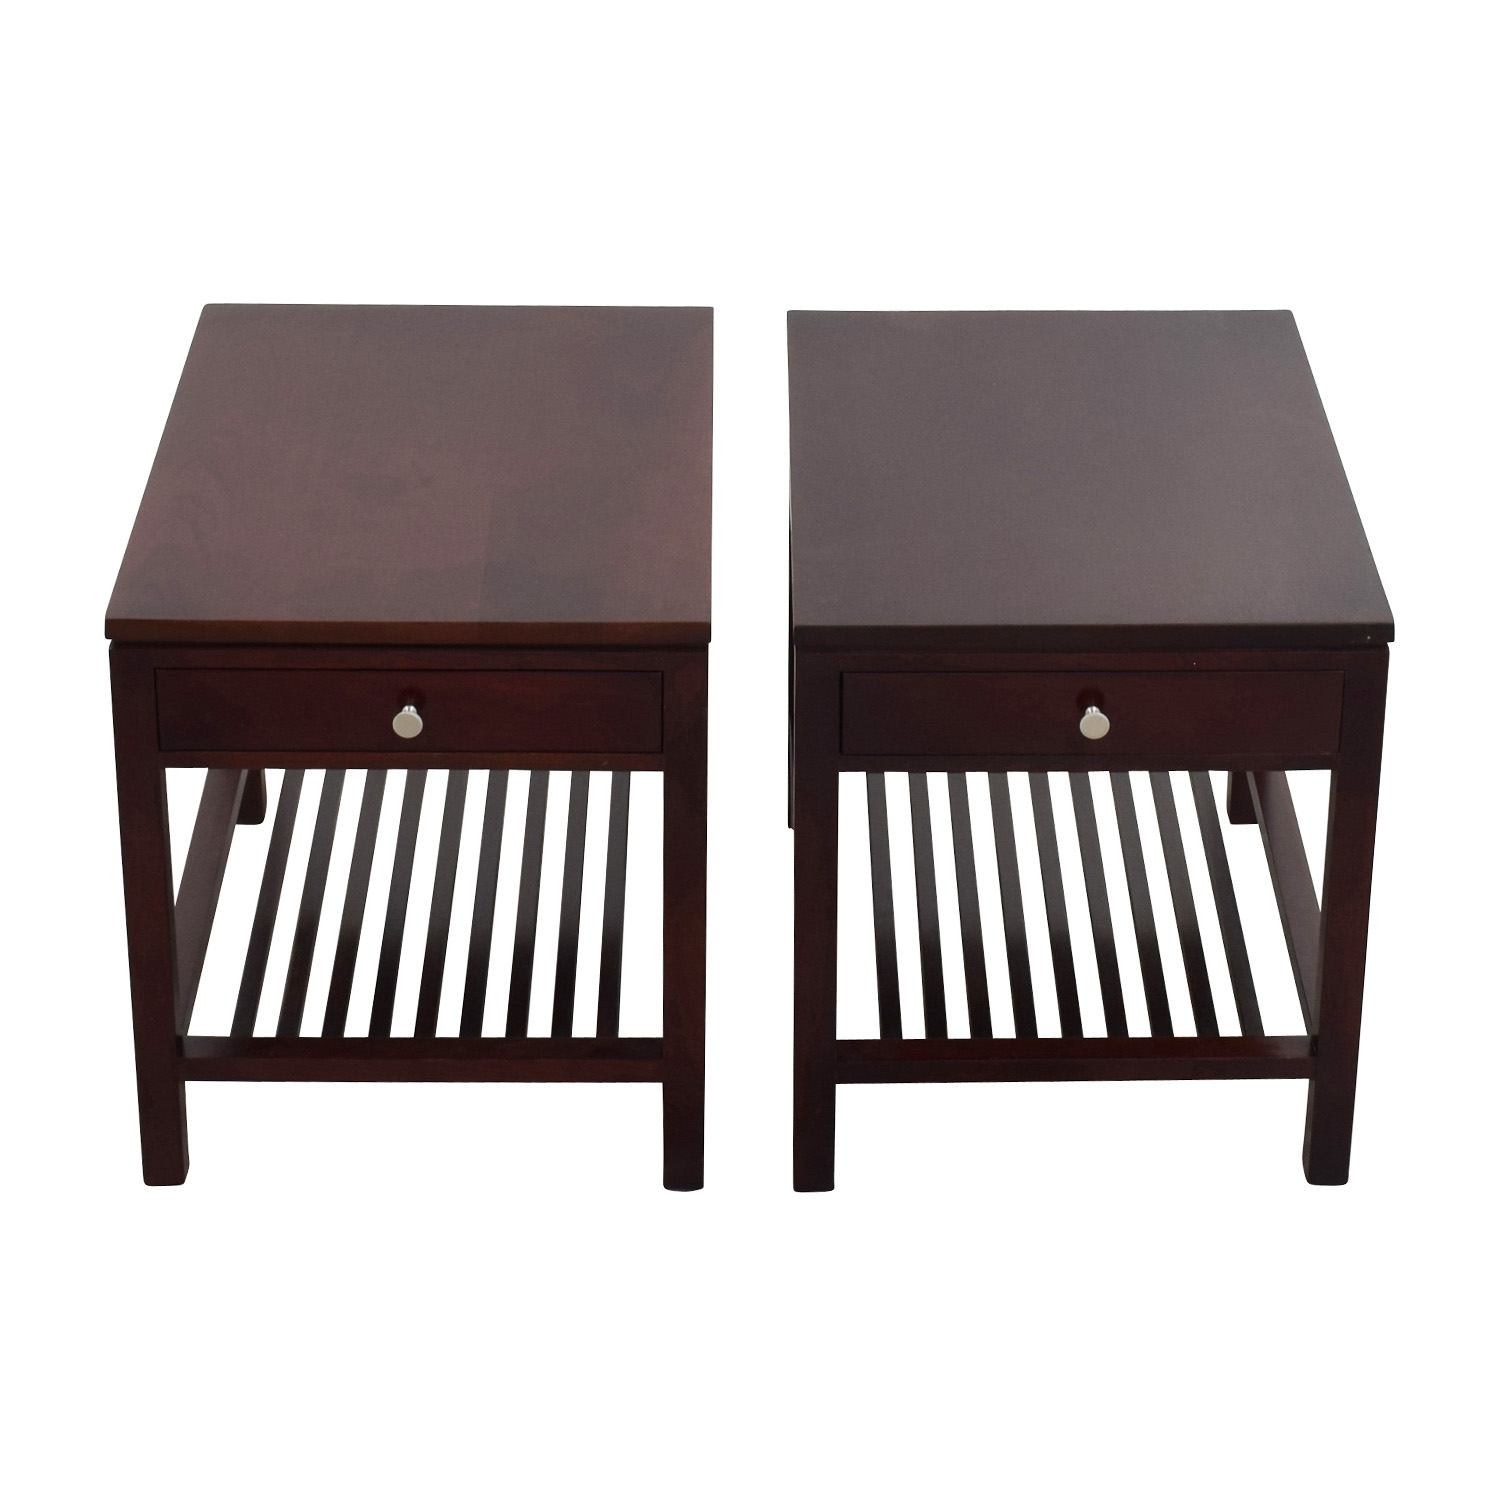 33 OFF Stickley Stickley Dark Brown Wood Side Table Tables